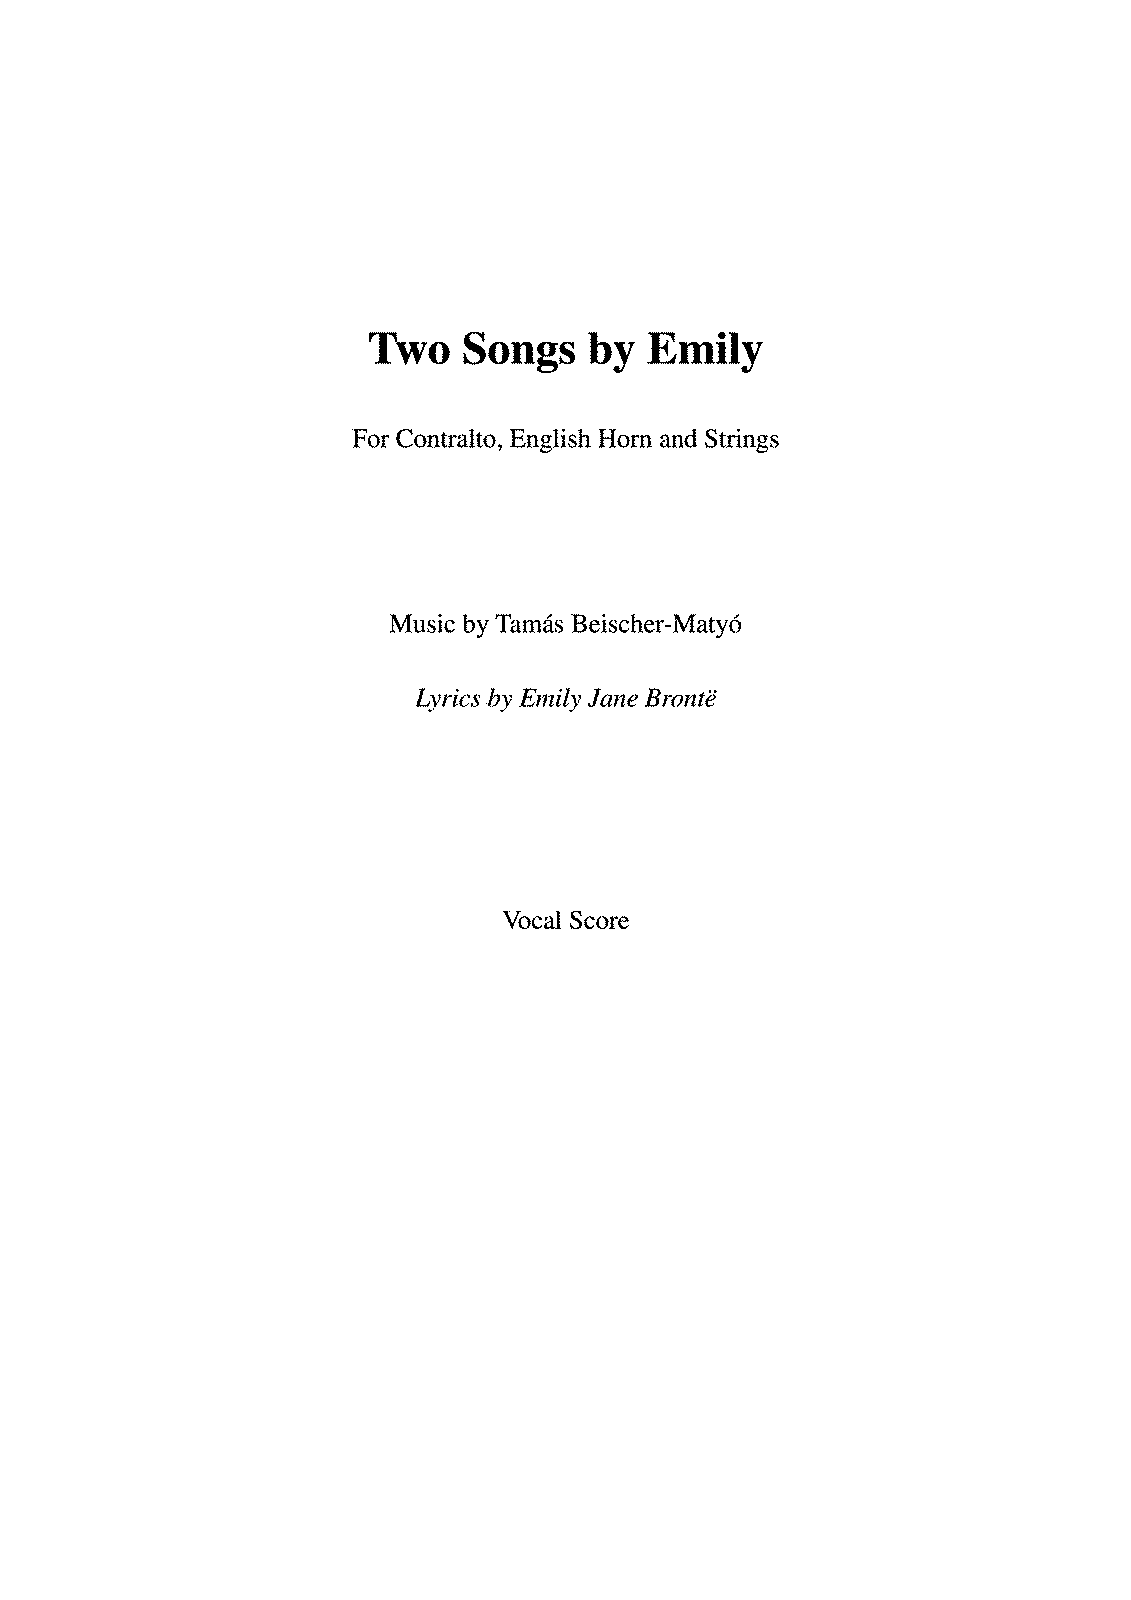 PMLP139522-Two Songs by Emily - vocal score 2010 09 29.pdf